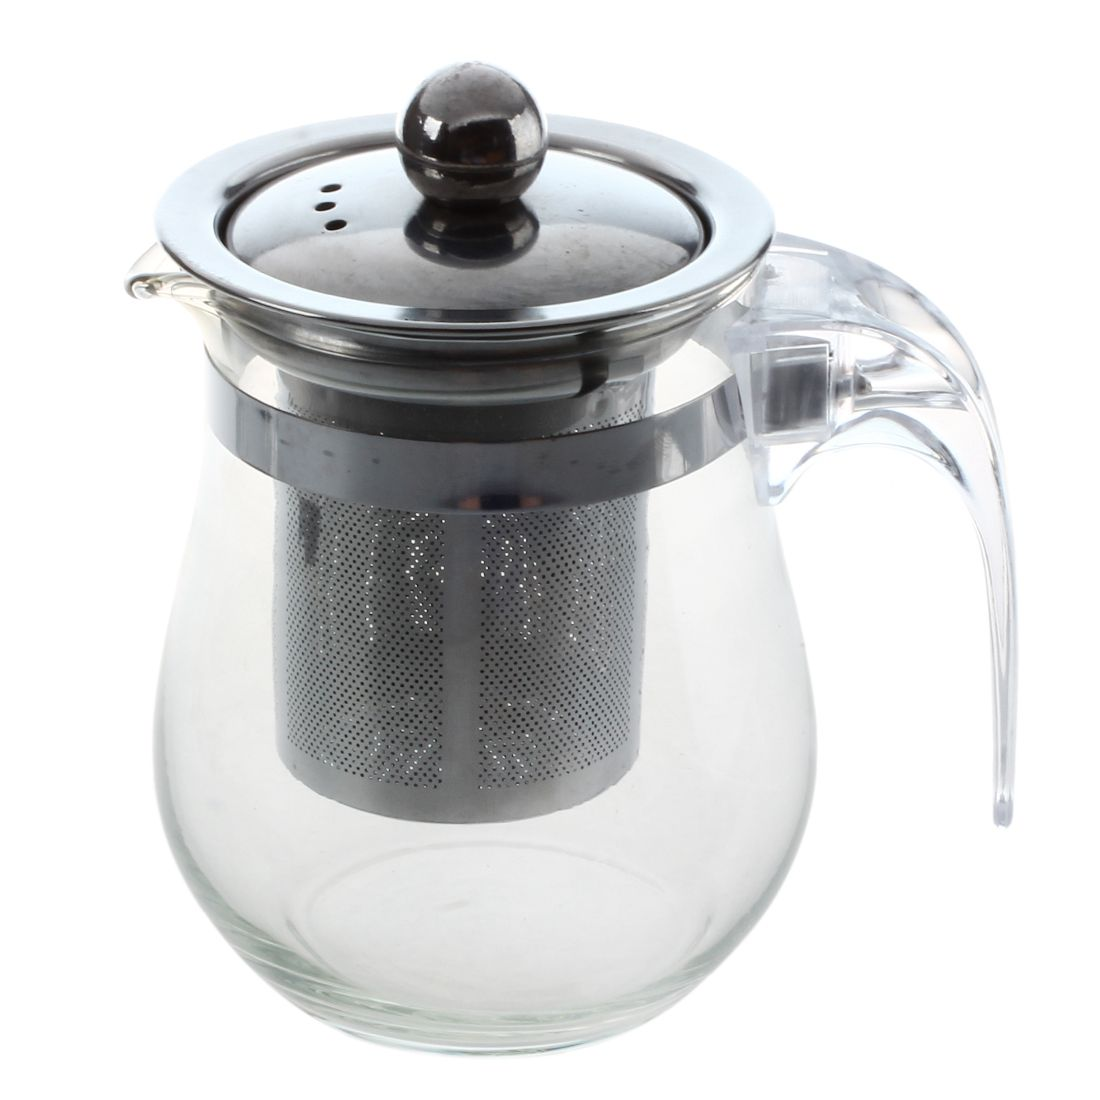 350mL Heat-resistant Clear Glass Teapot Stainless Steel Infuser Flower Tea Pot 1pc teapot pot shape stainless steel leaf tea infuser filter strainer ball spoon strainer infuser tea spoon shaped teapot